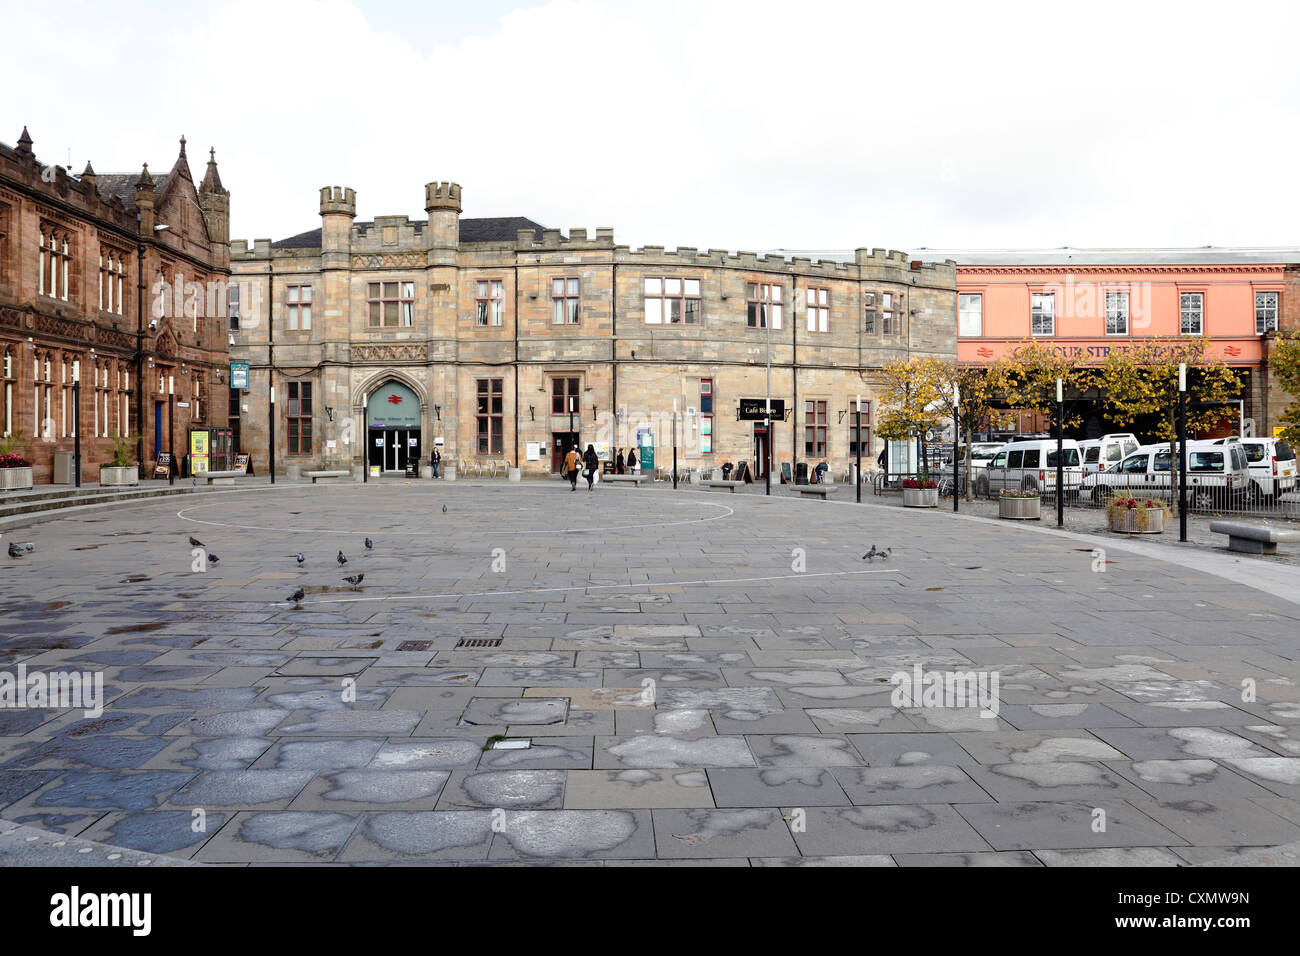 Paisley Gilmour Street Train Station on County Square in Paisley town centre Renfrewshire Scotland UK - Stock Image